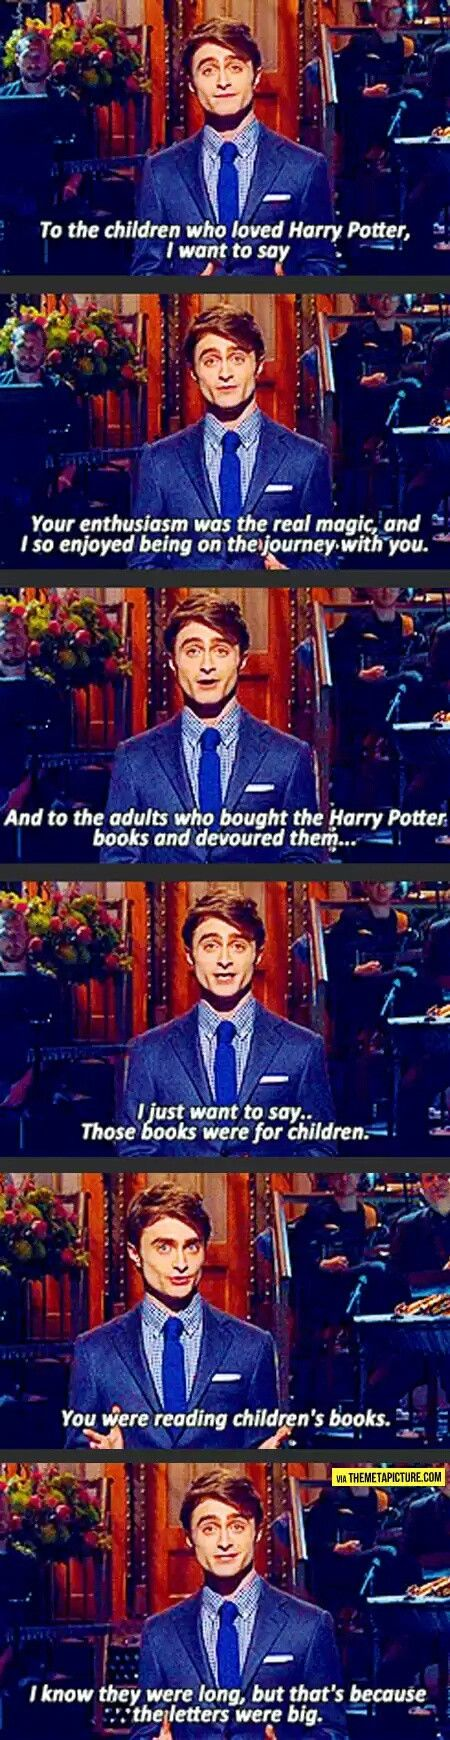 Daniel Radcliffe on SNL.